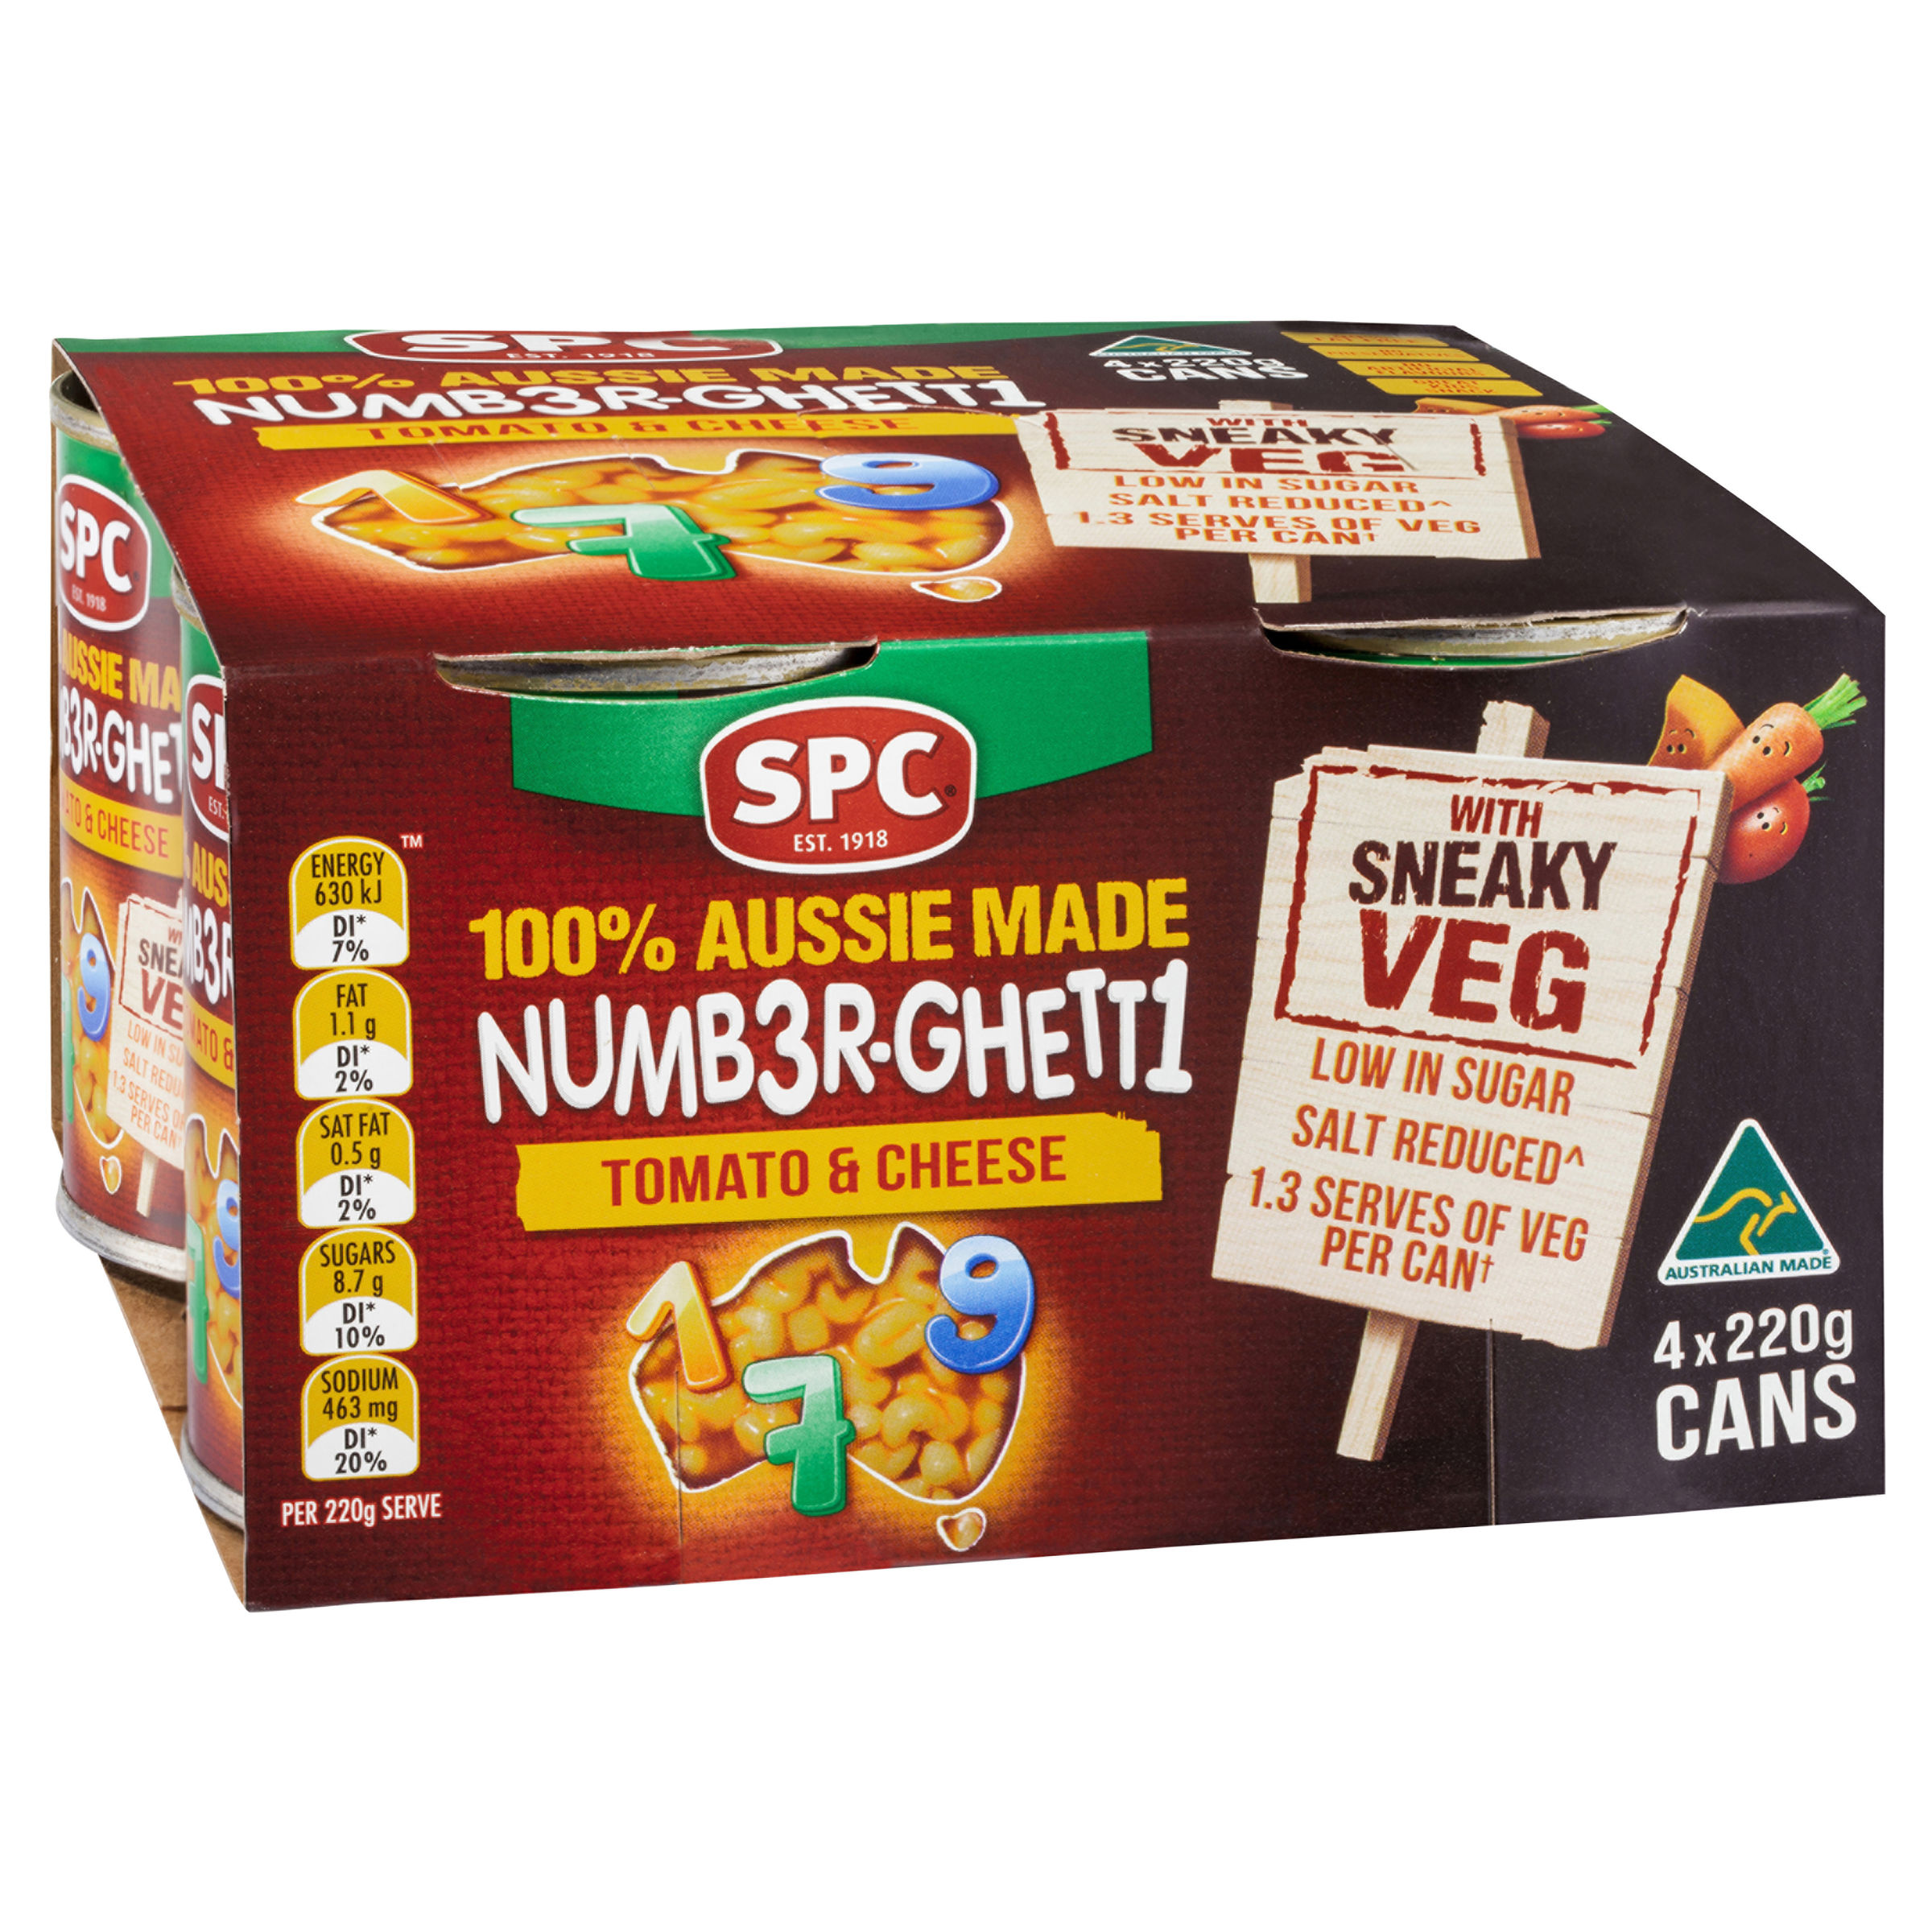 SPC Number-Ghetti Tomato and Cheese with Sneaky Veg 4 x 220g